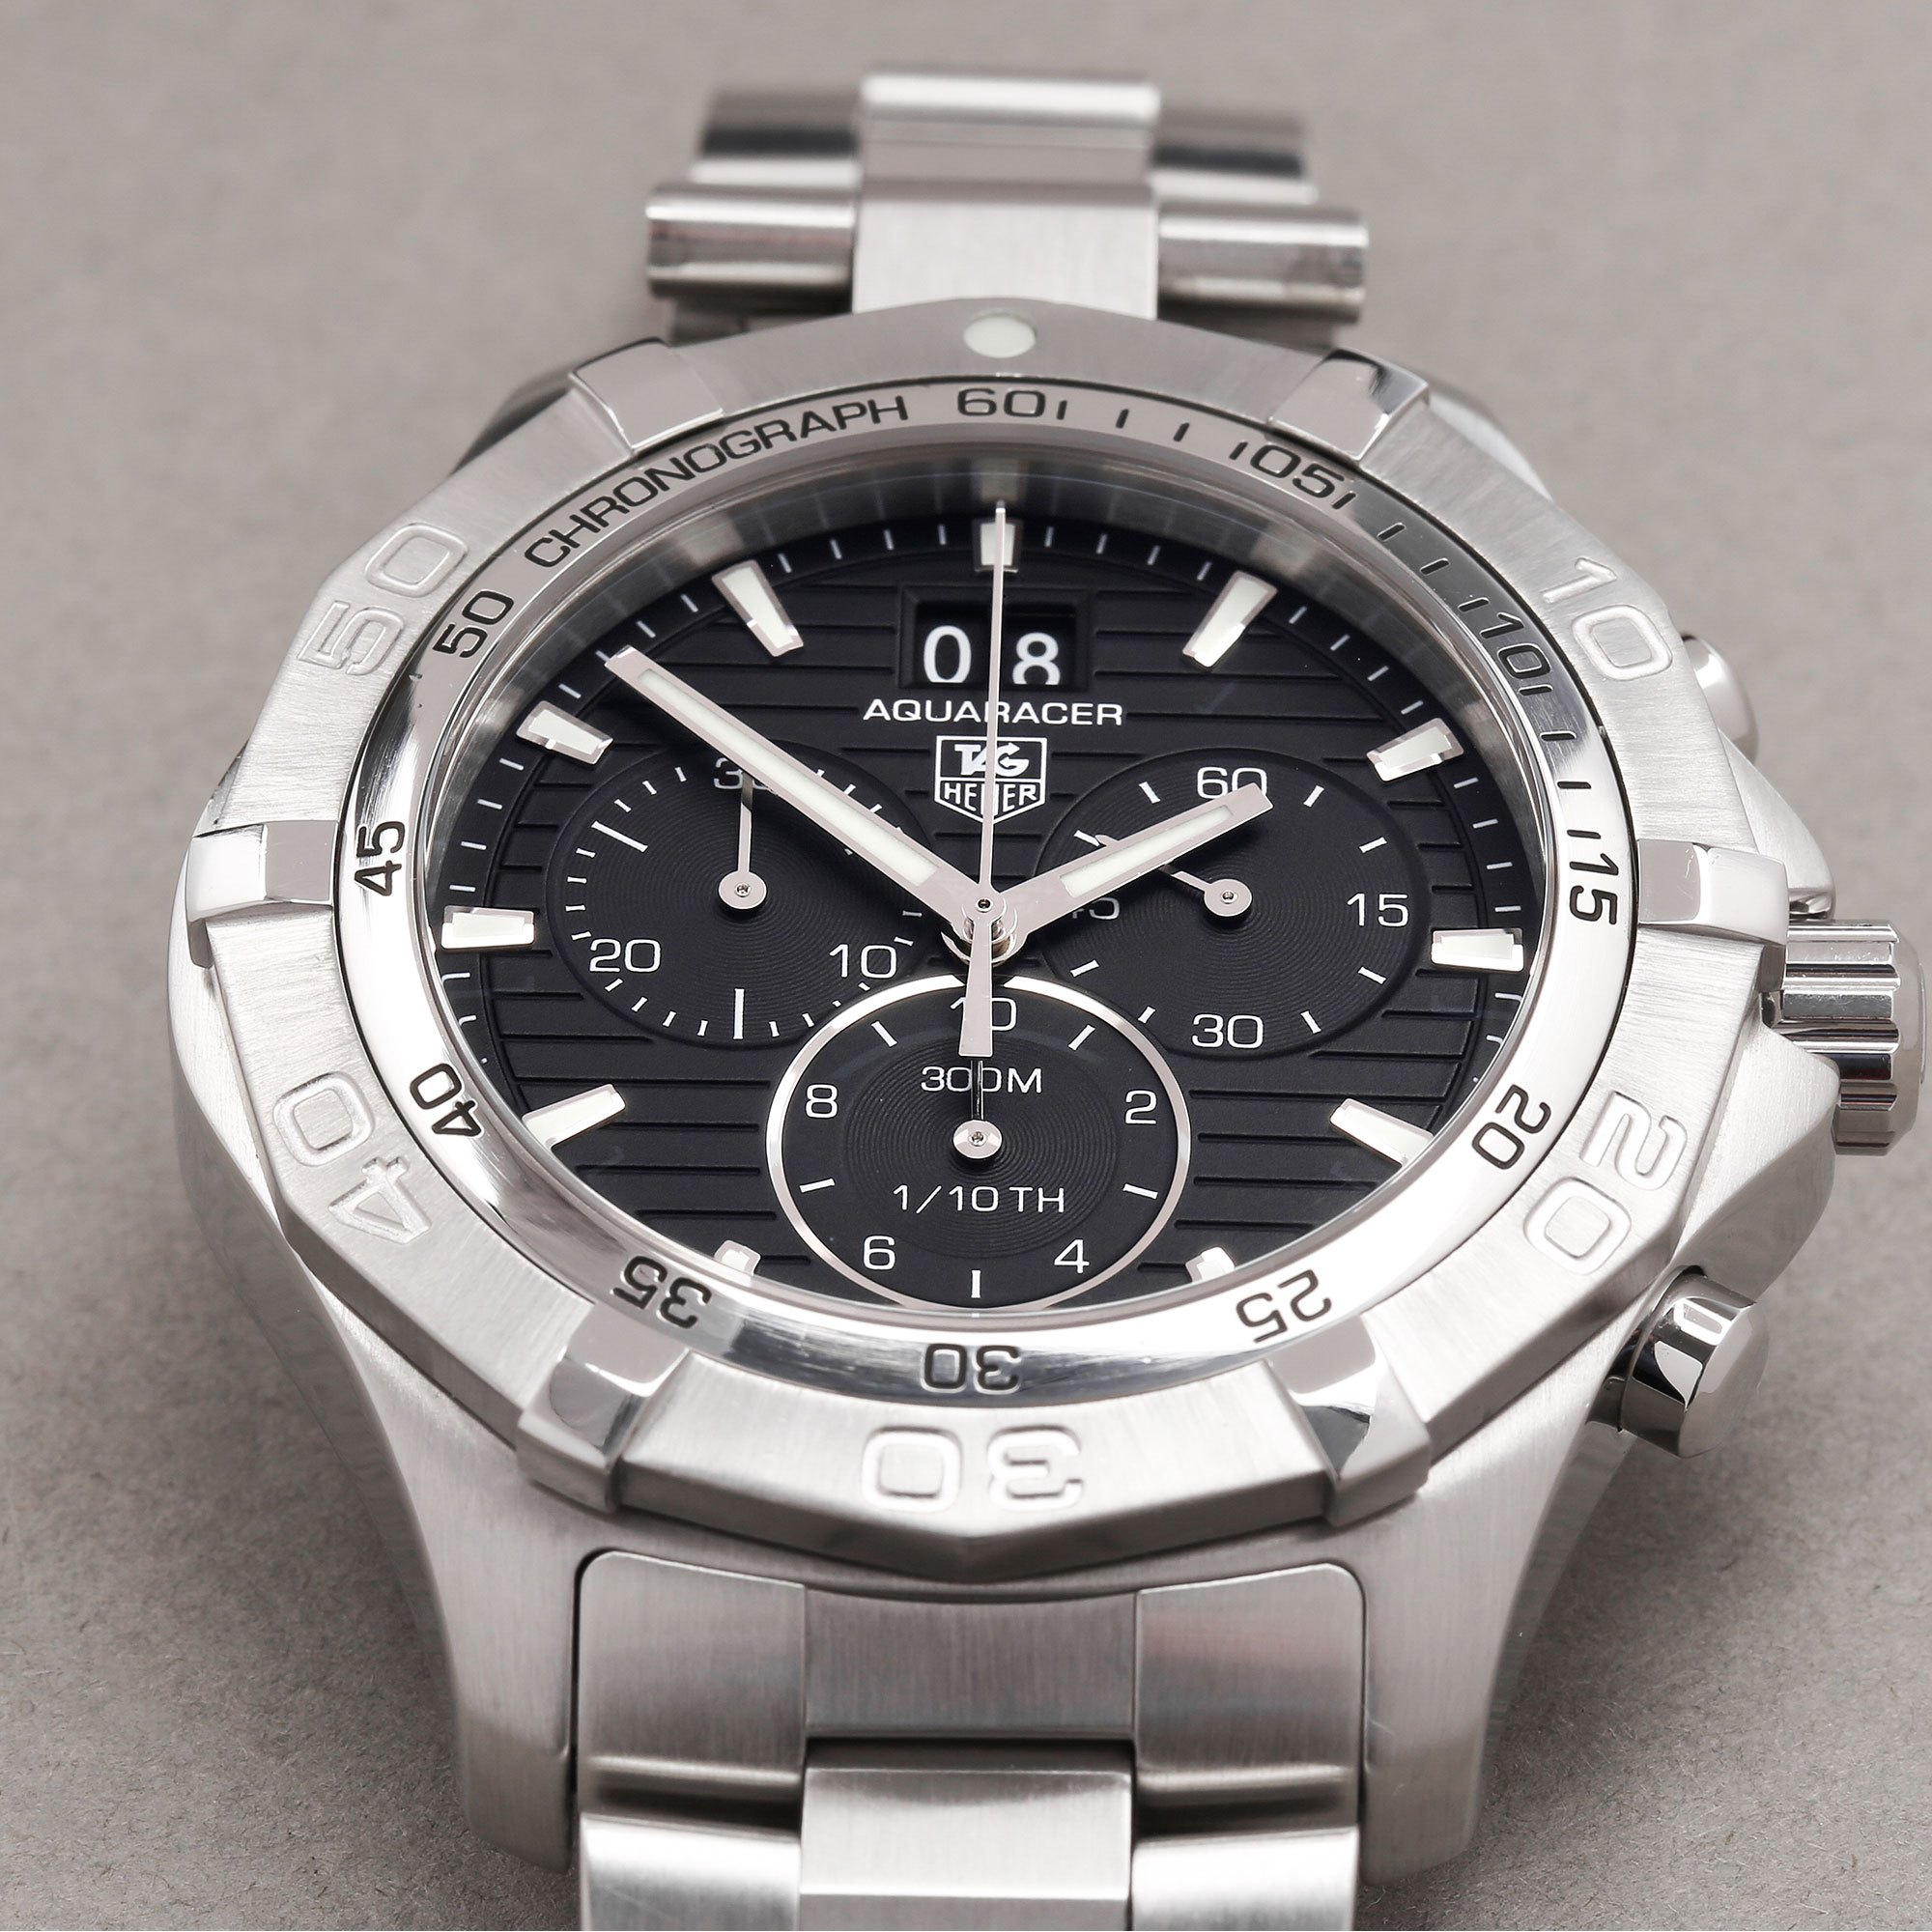 Tag Heuer Aquaracer Chronograph Stainless Steel CAF101E